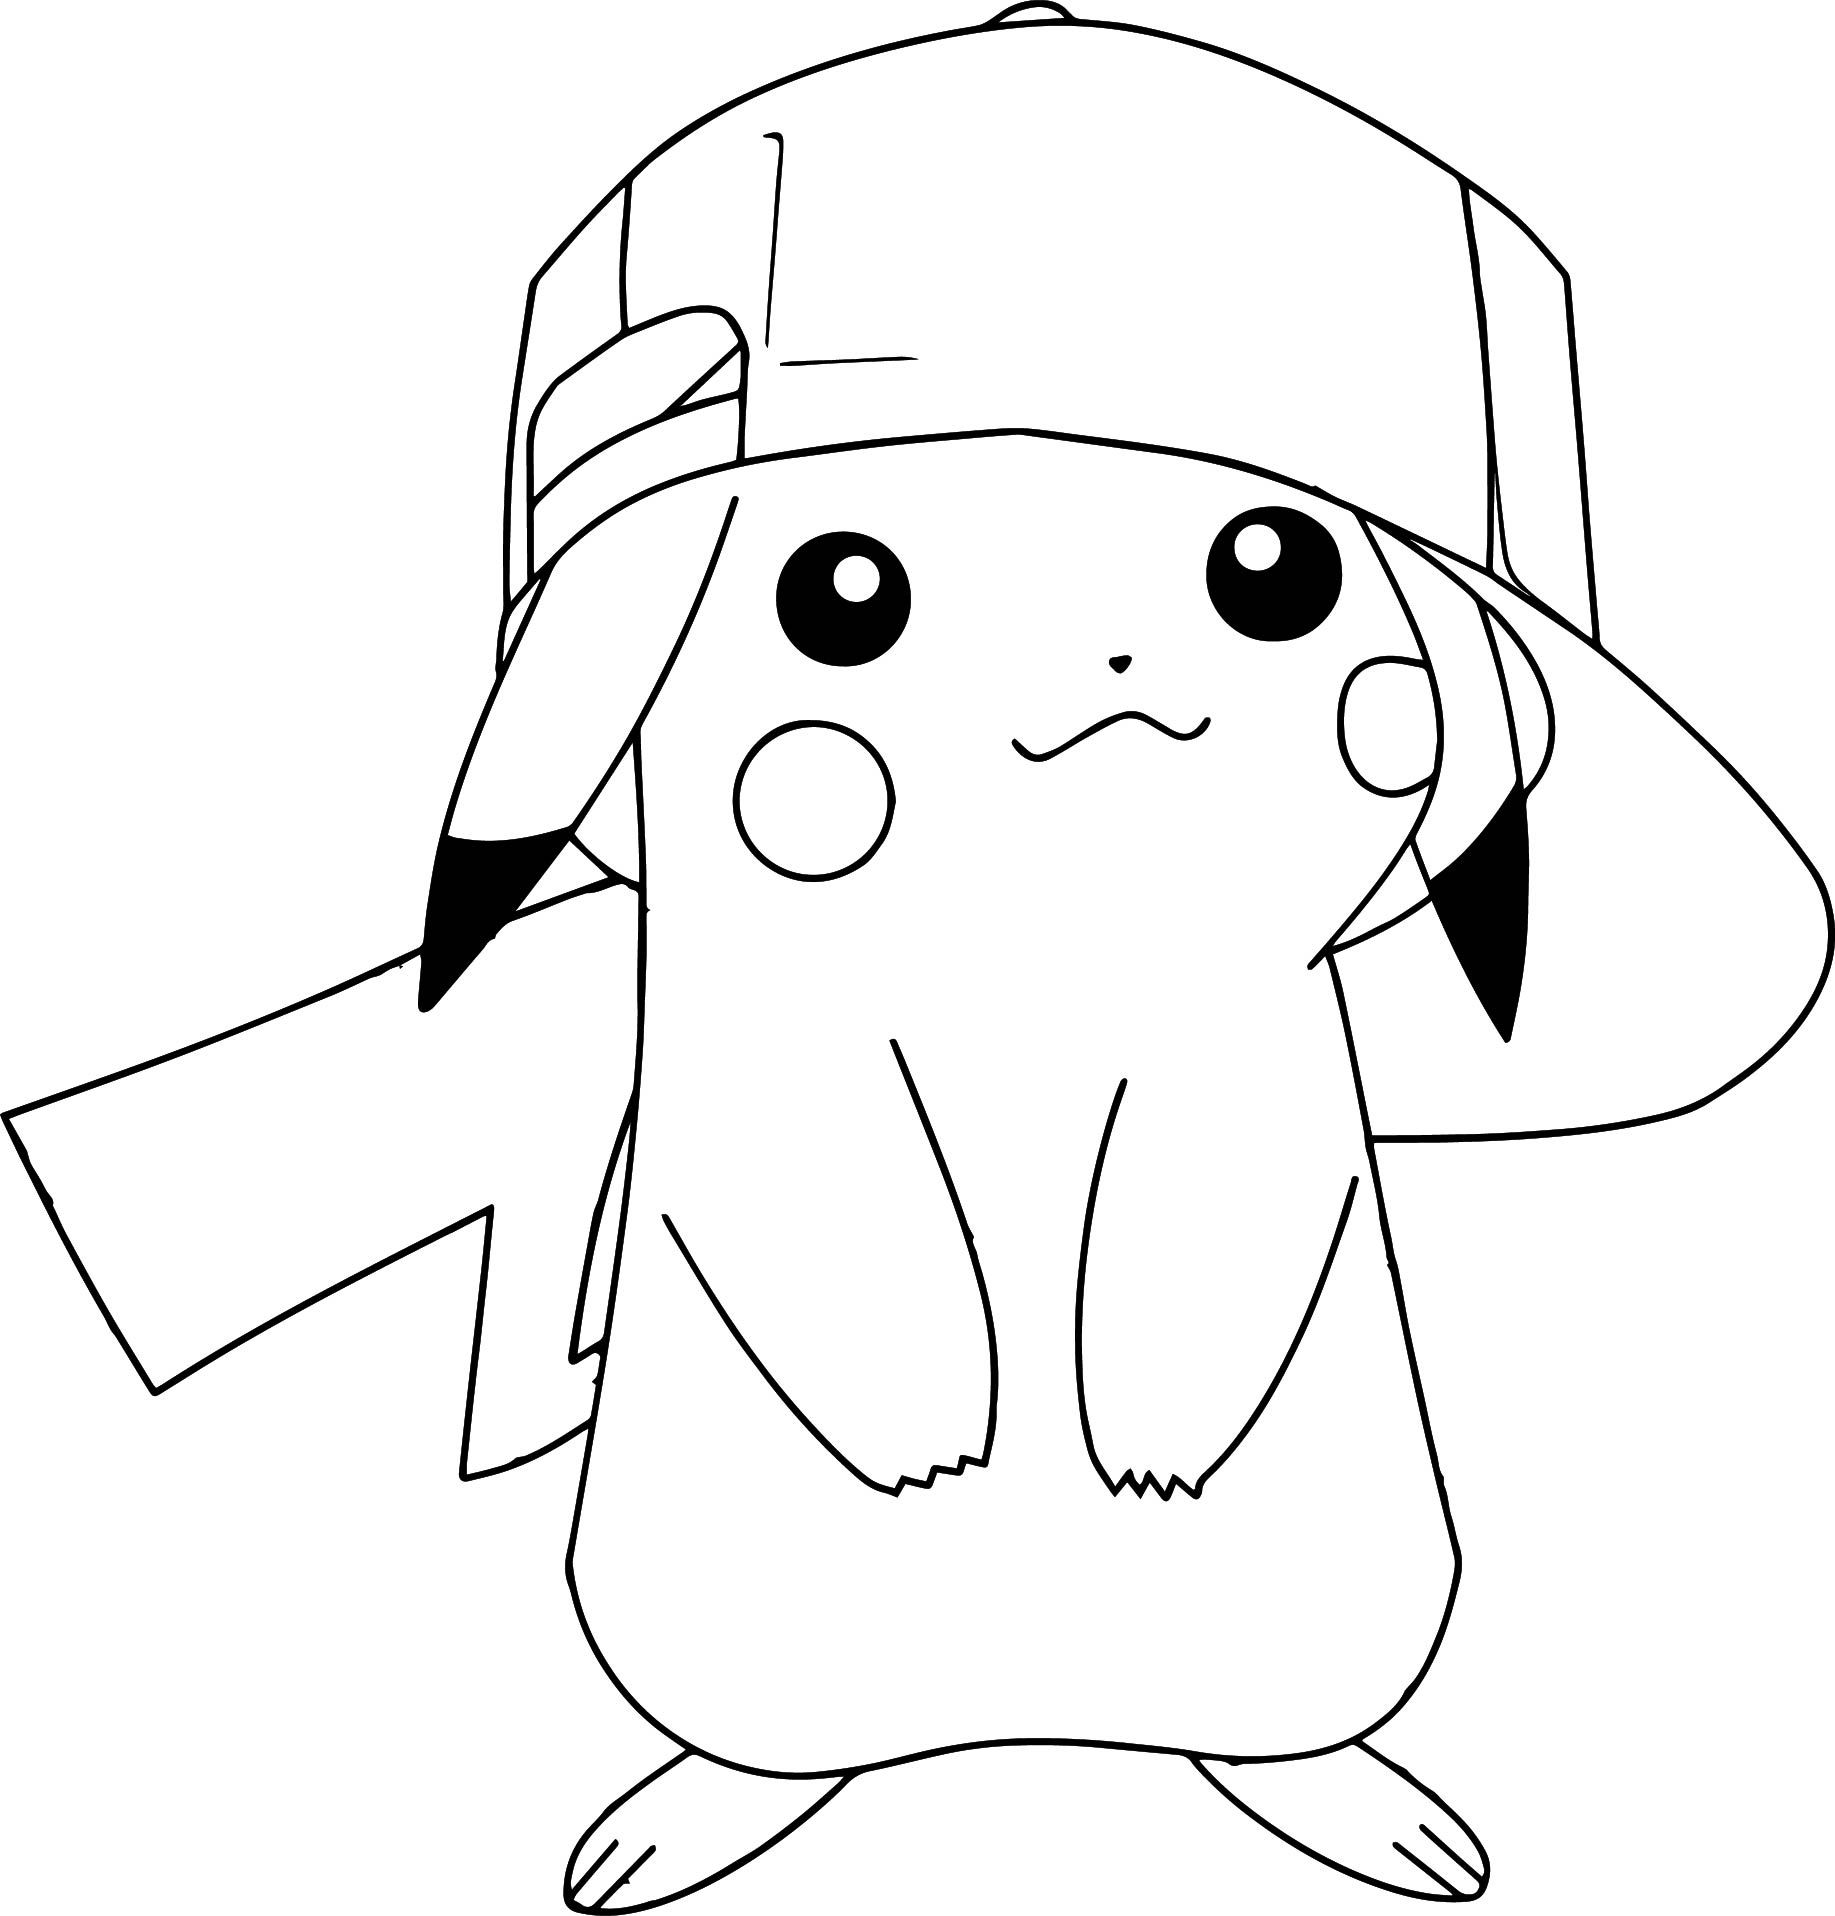 pokeman coloring pages # 9